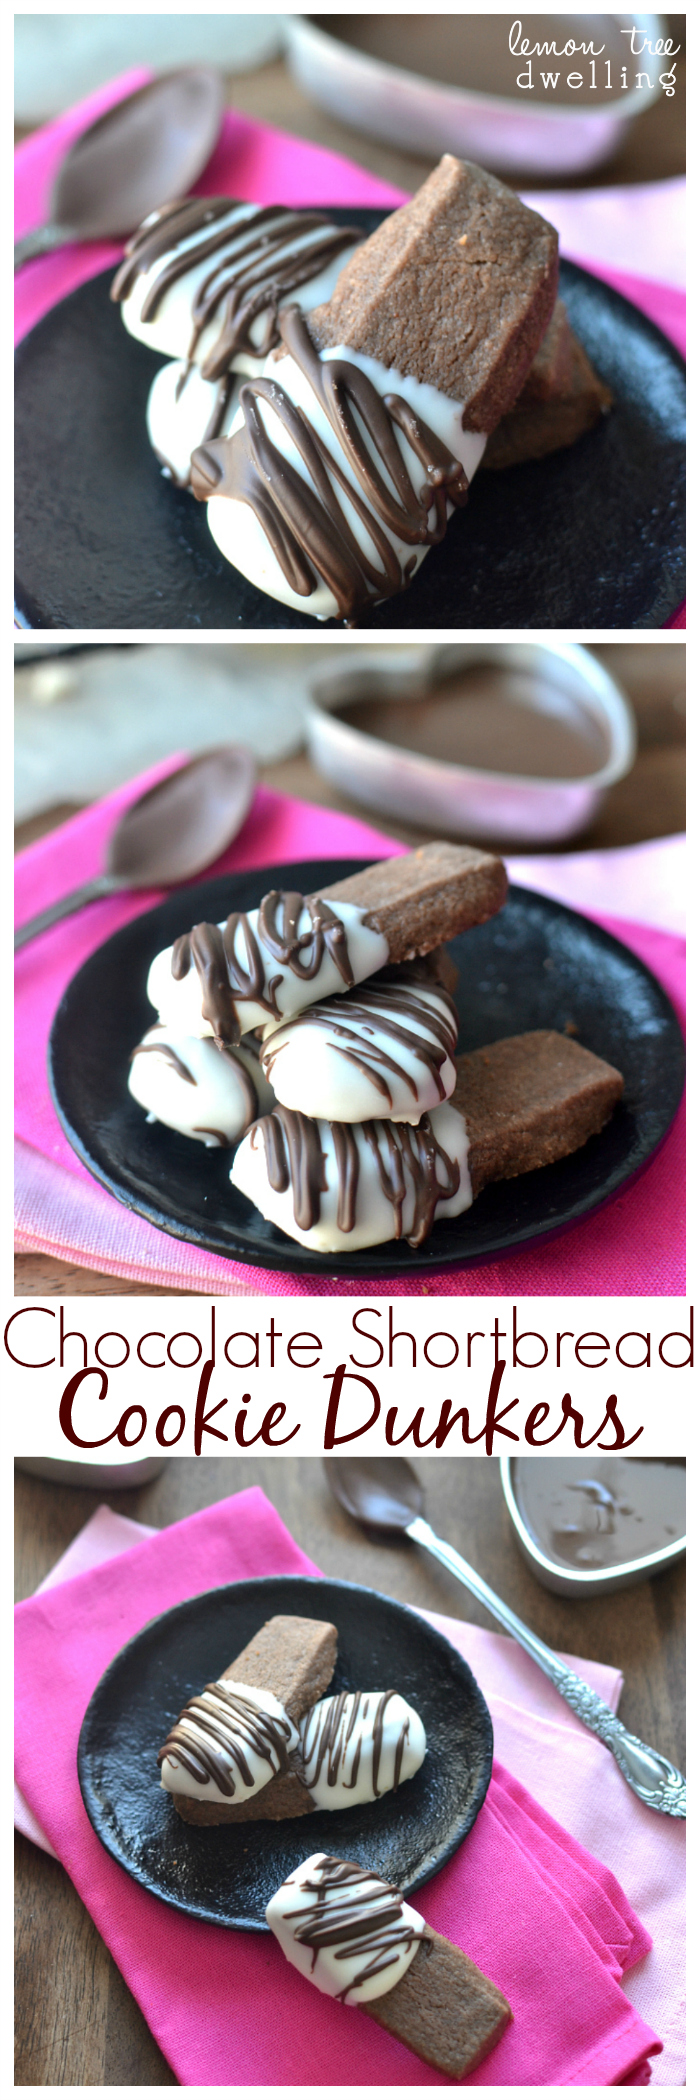 Chocolate Shortbread Cookie Dunkers. These would make a great Valentine's Day gift!!